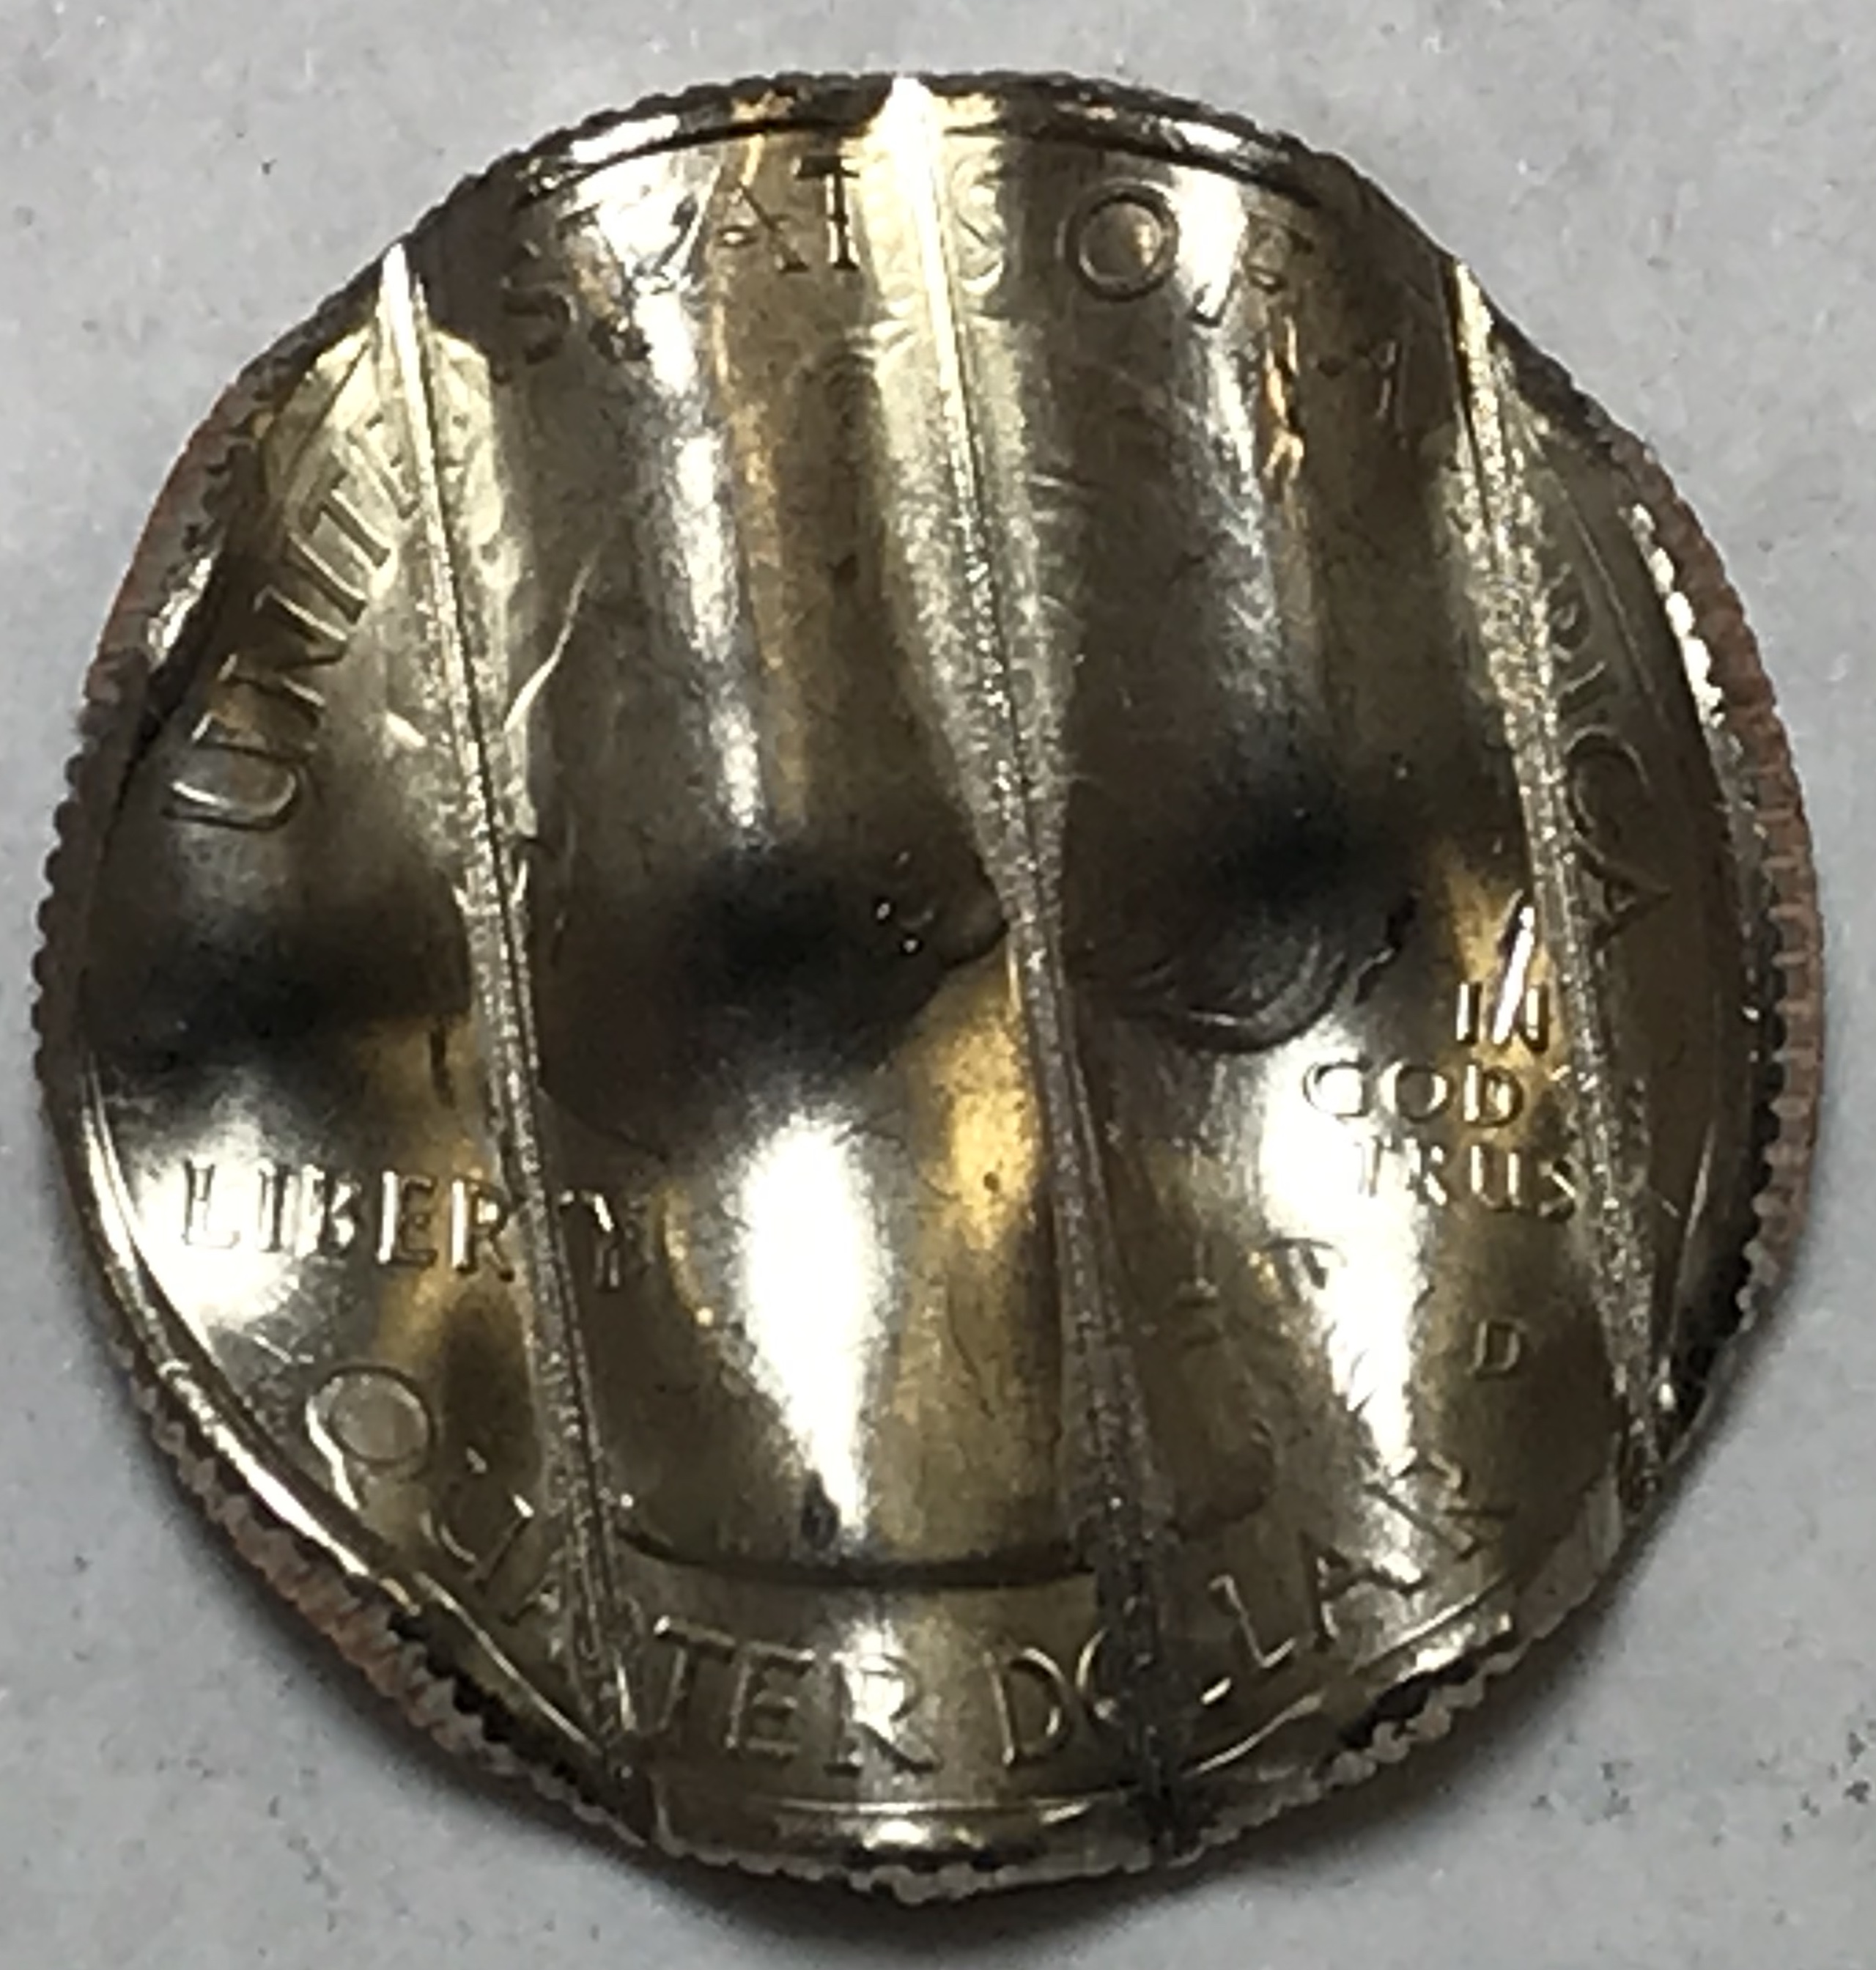 waffle coins